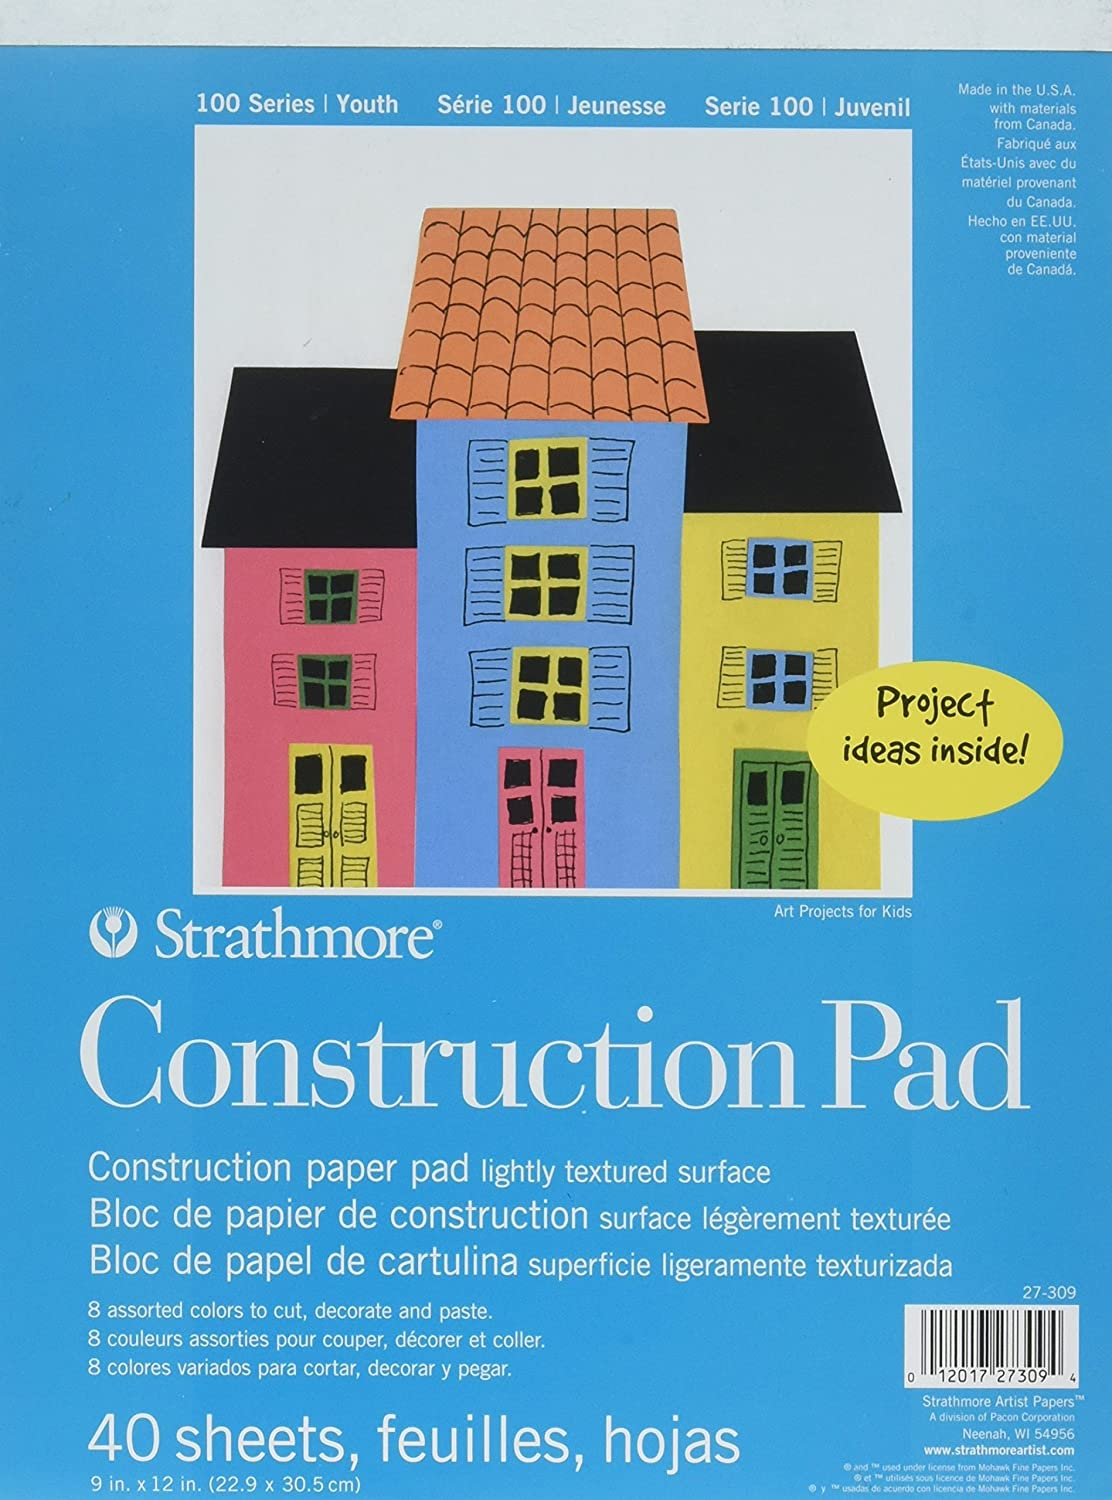 Strathmore Construction Paper Pad